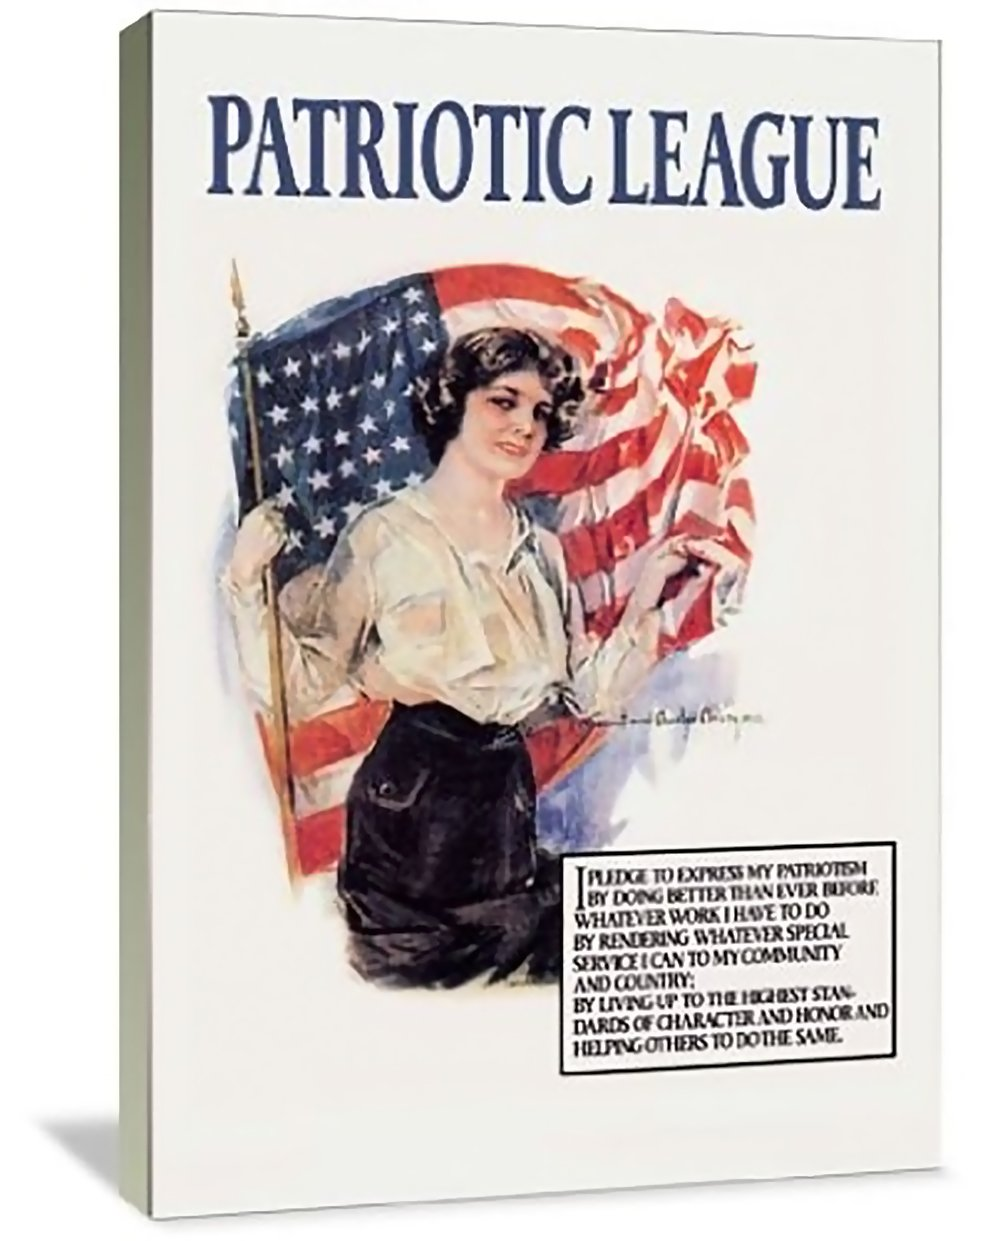 Patriotic League 32'' x 48'' Gallery Wrapped Canvas Wall Art